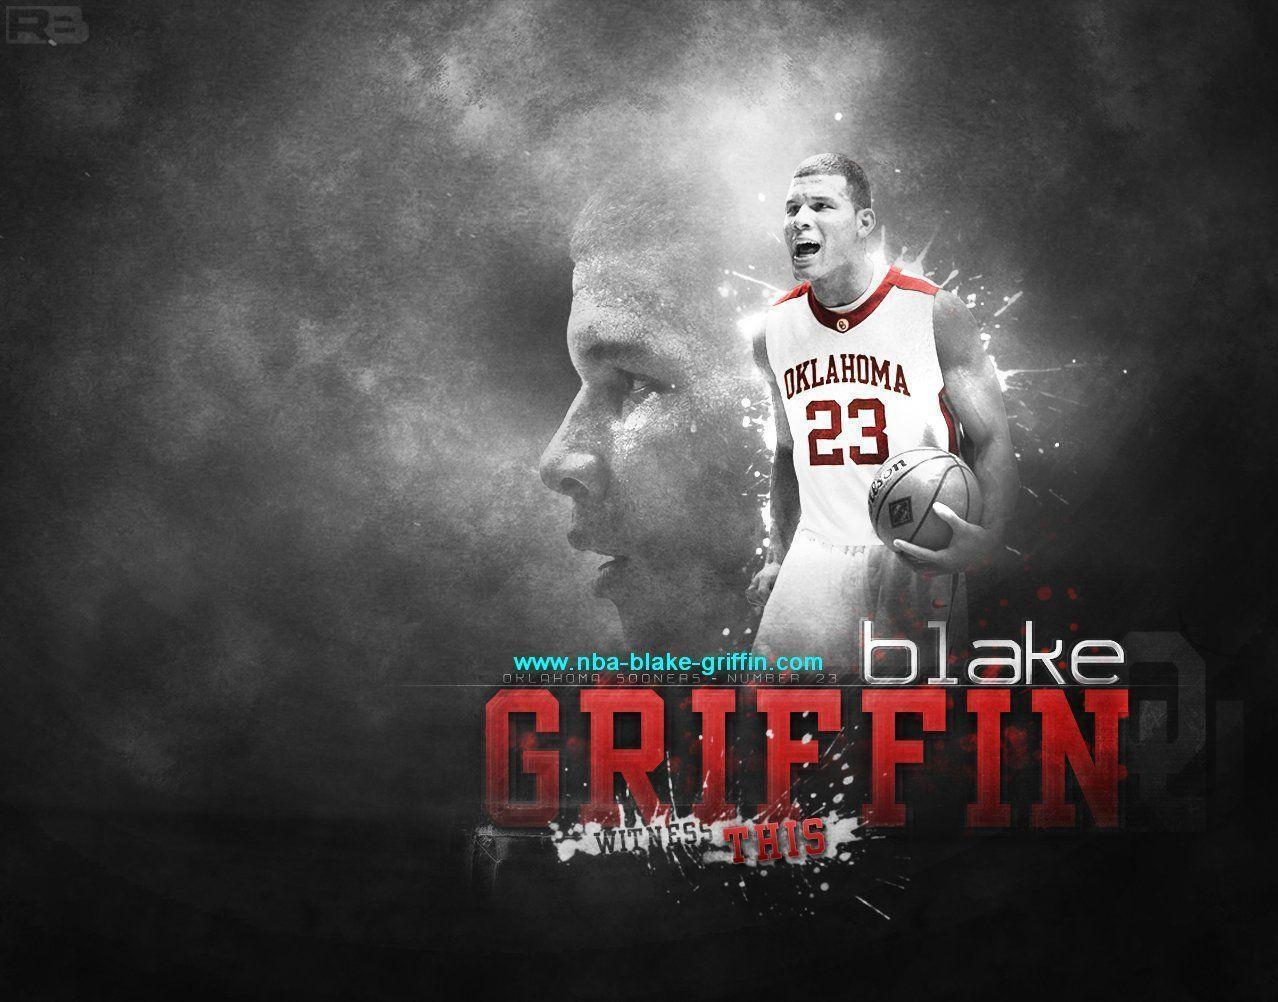 blake griffin wallpaper - photo #18